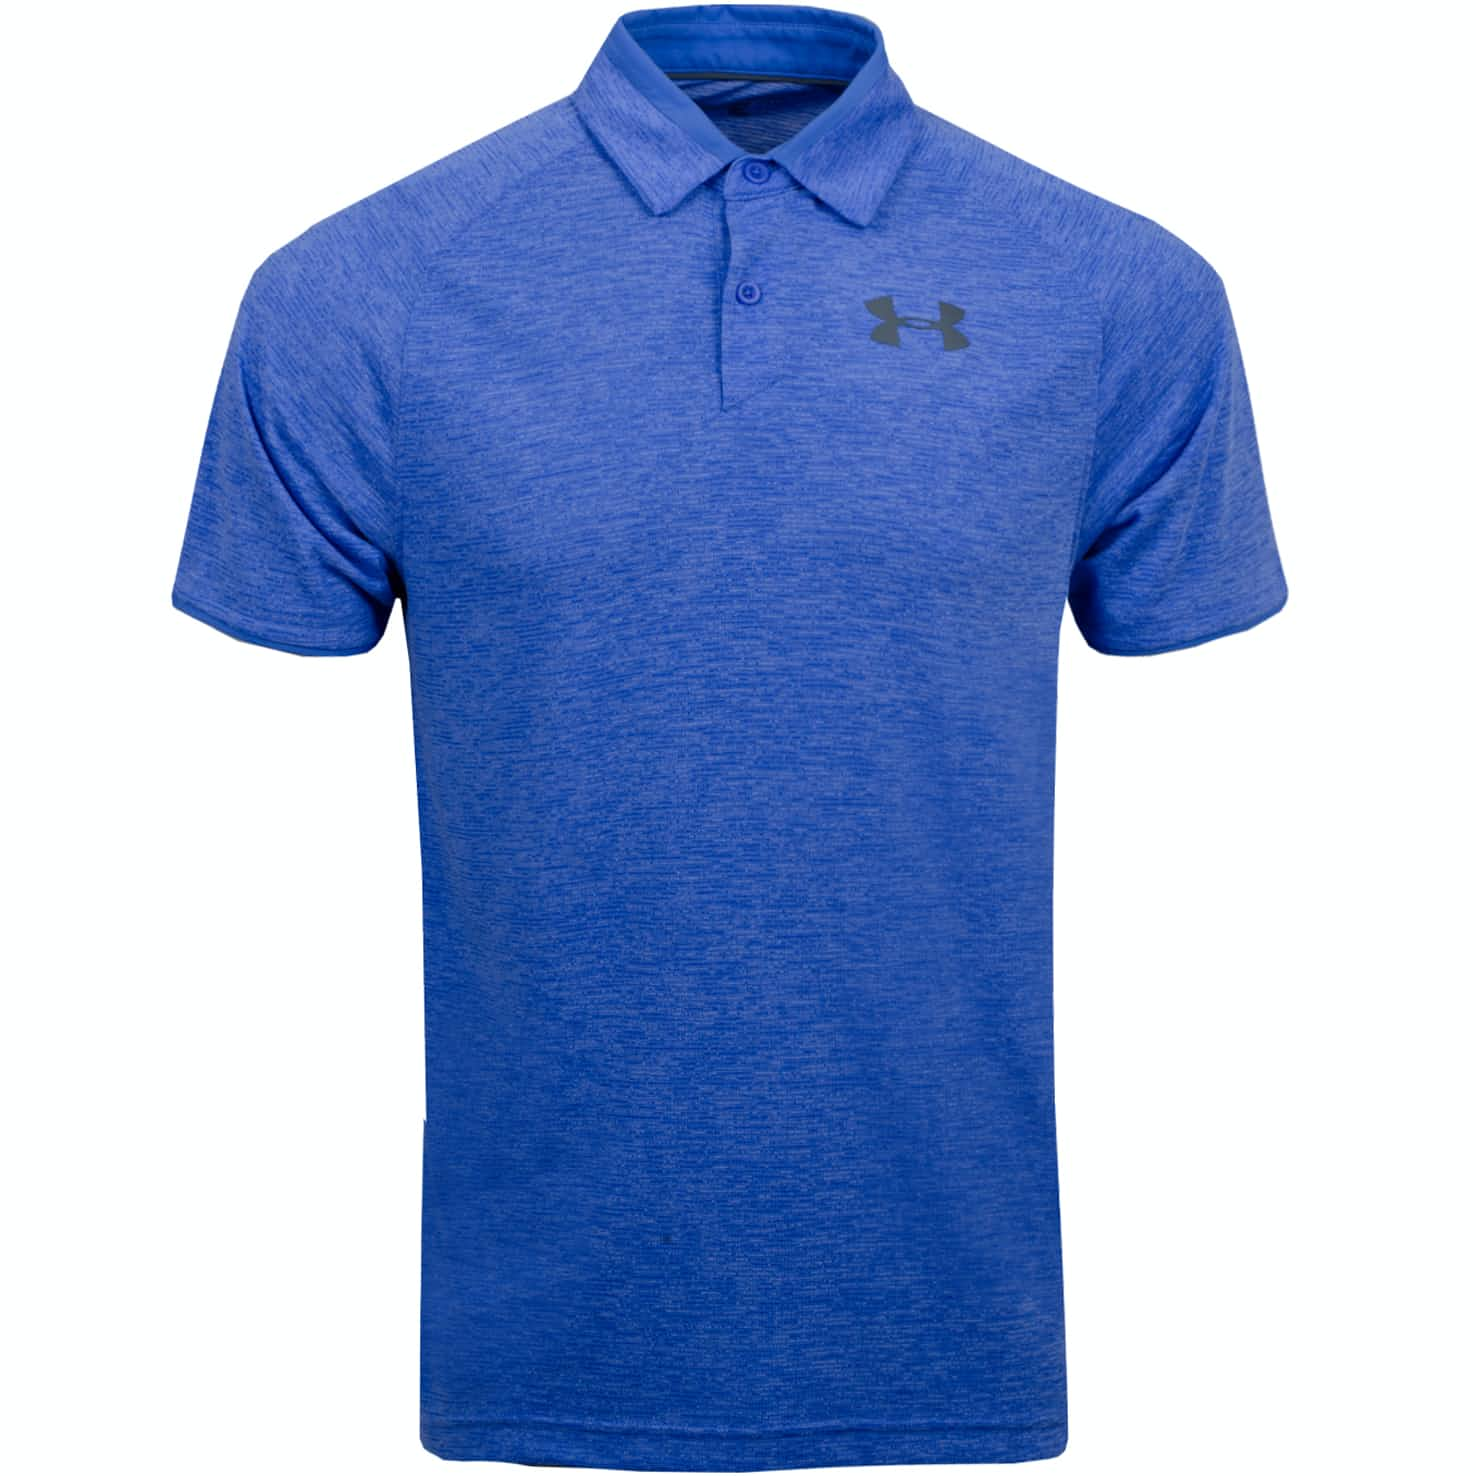 Vanish Polo Tempest/Pitch Grey - AW19